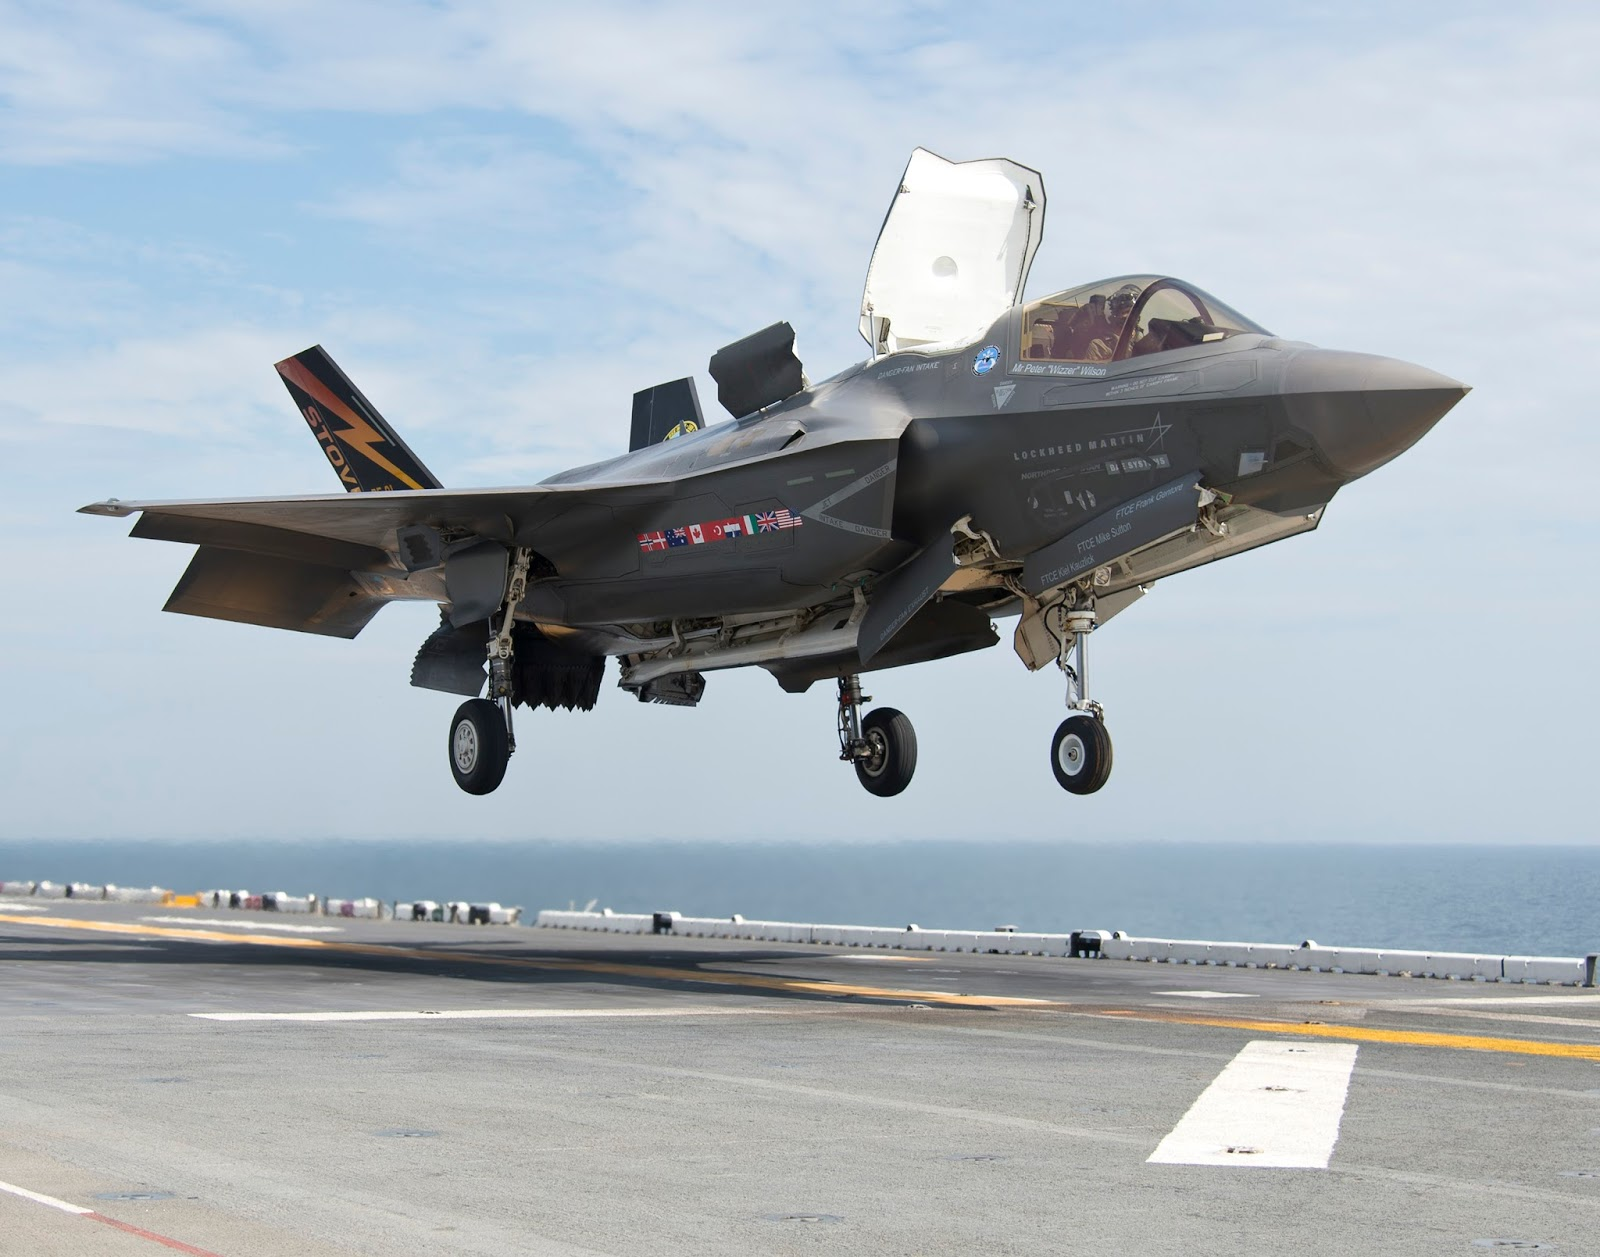 24200dea3a81 US Air Force remains confident about the Lockheed Martin F-35 ...